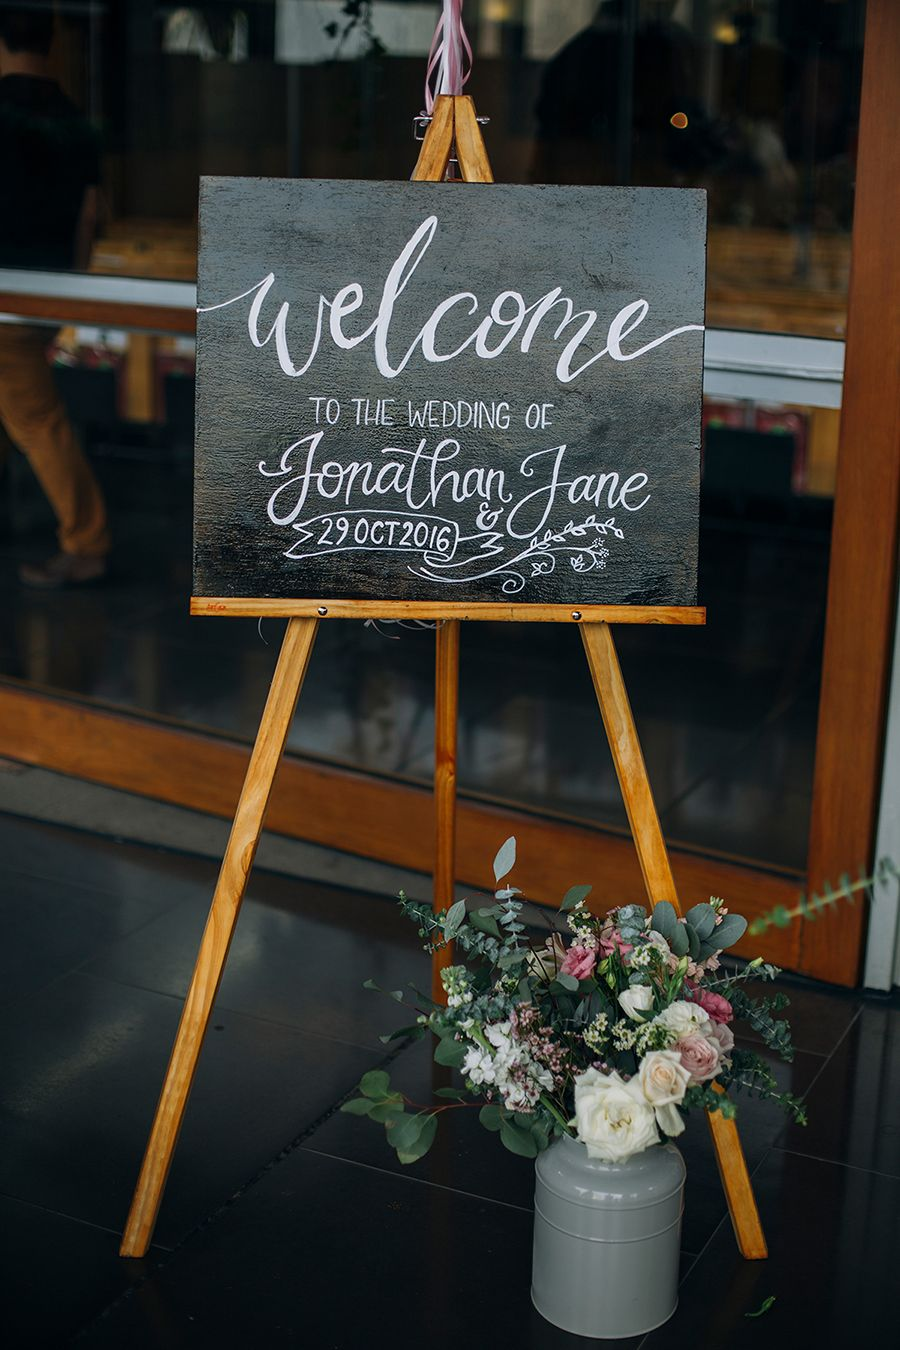 Jonathan and Jane's Cherry BlossomFilled Wedding at